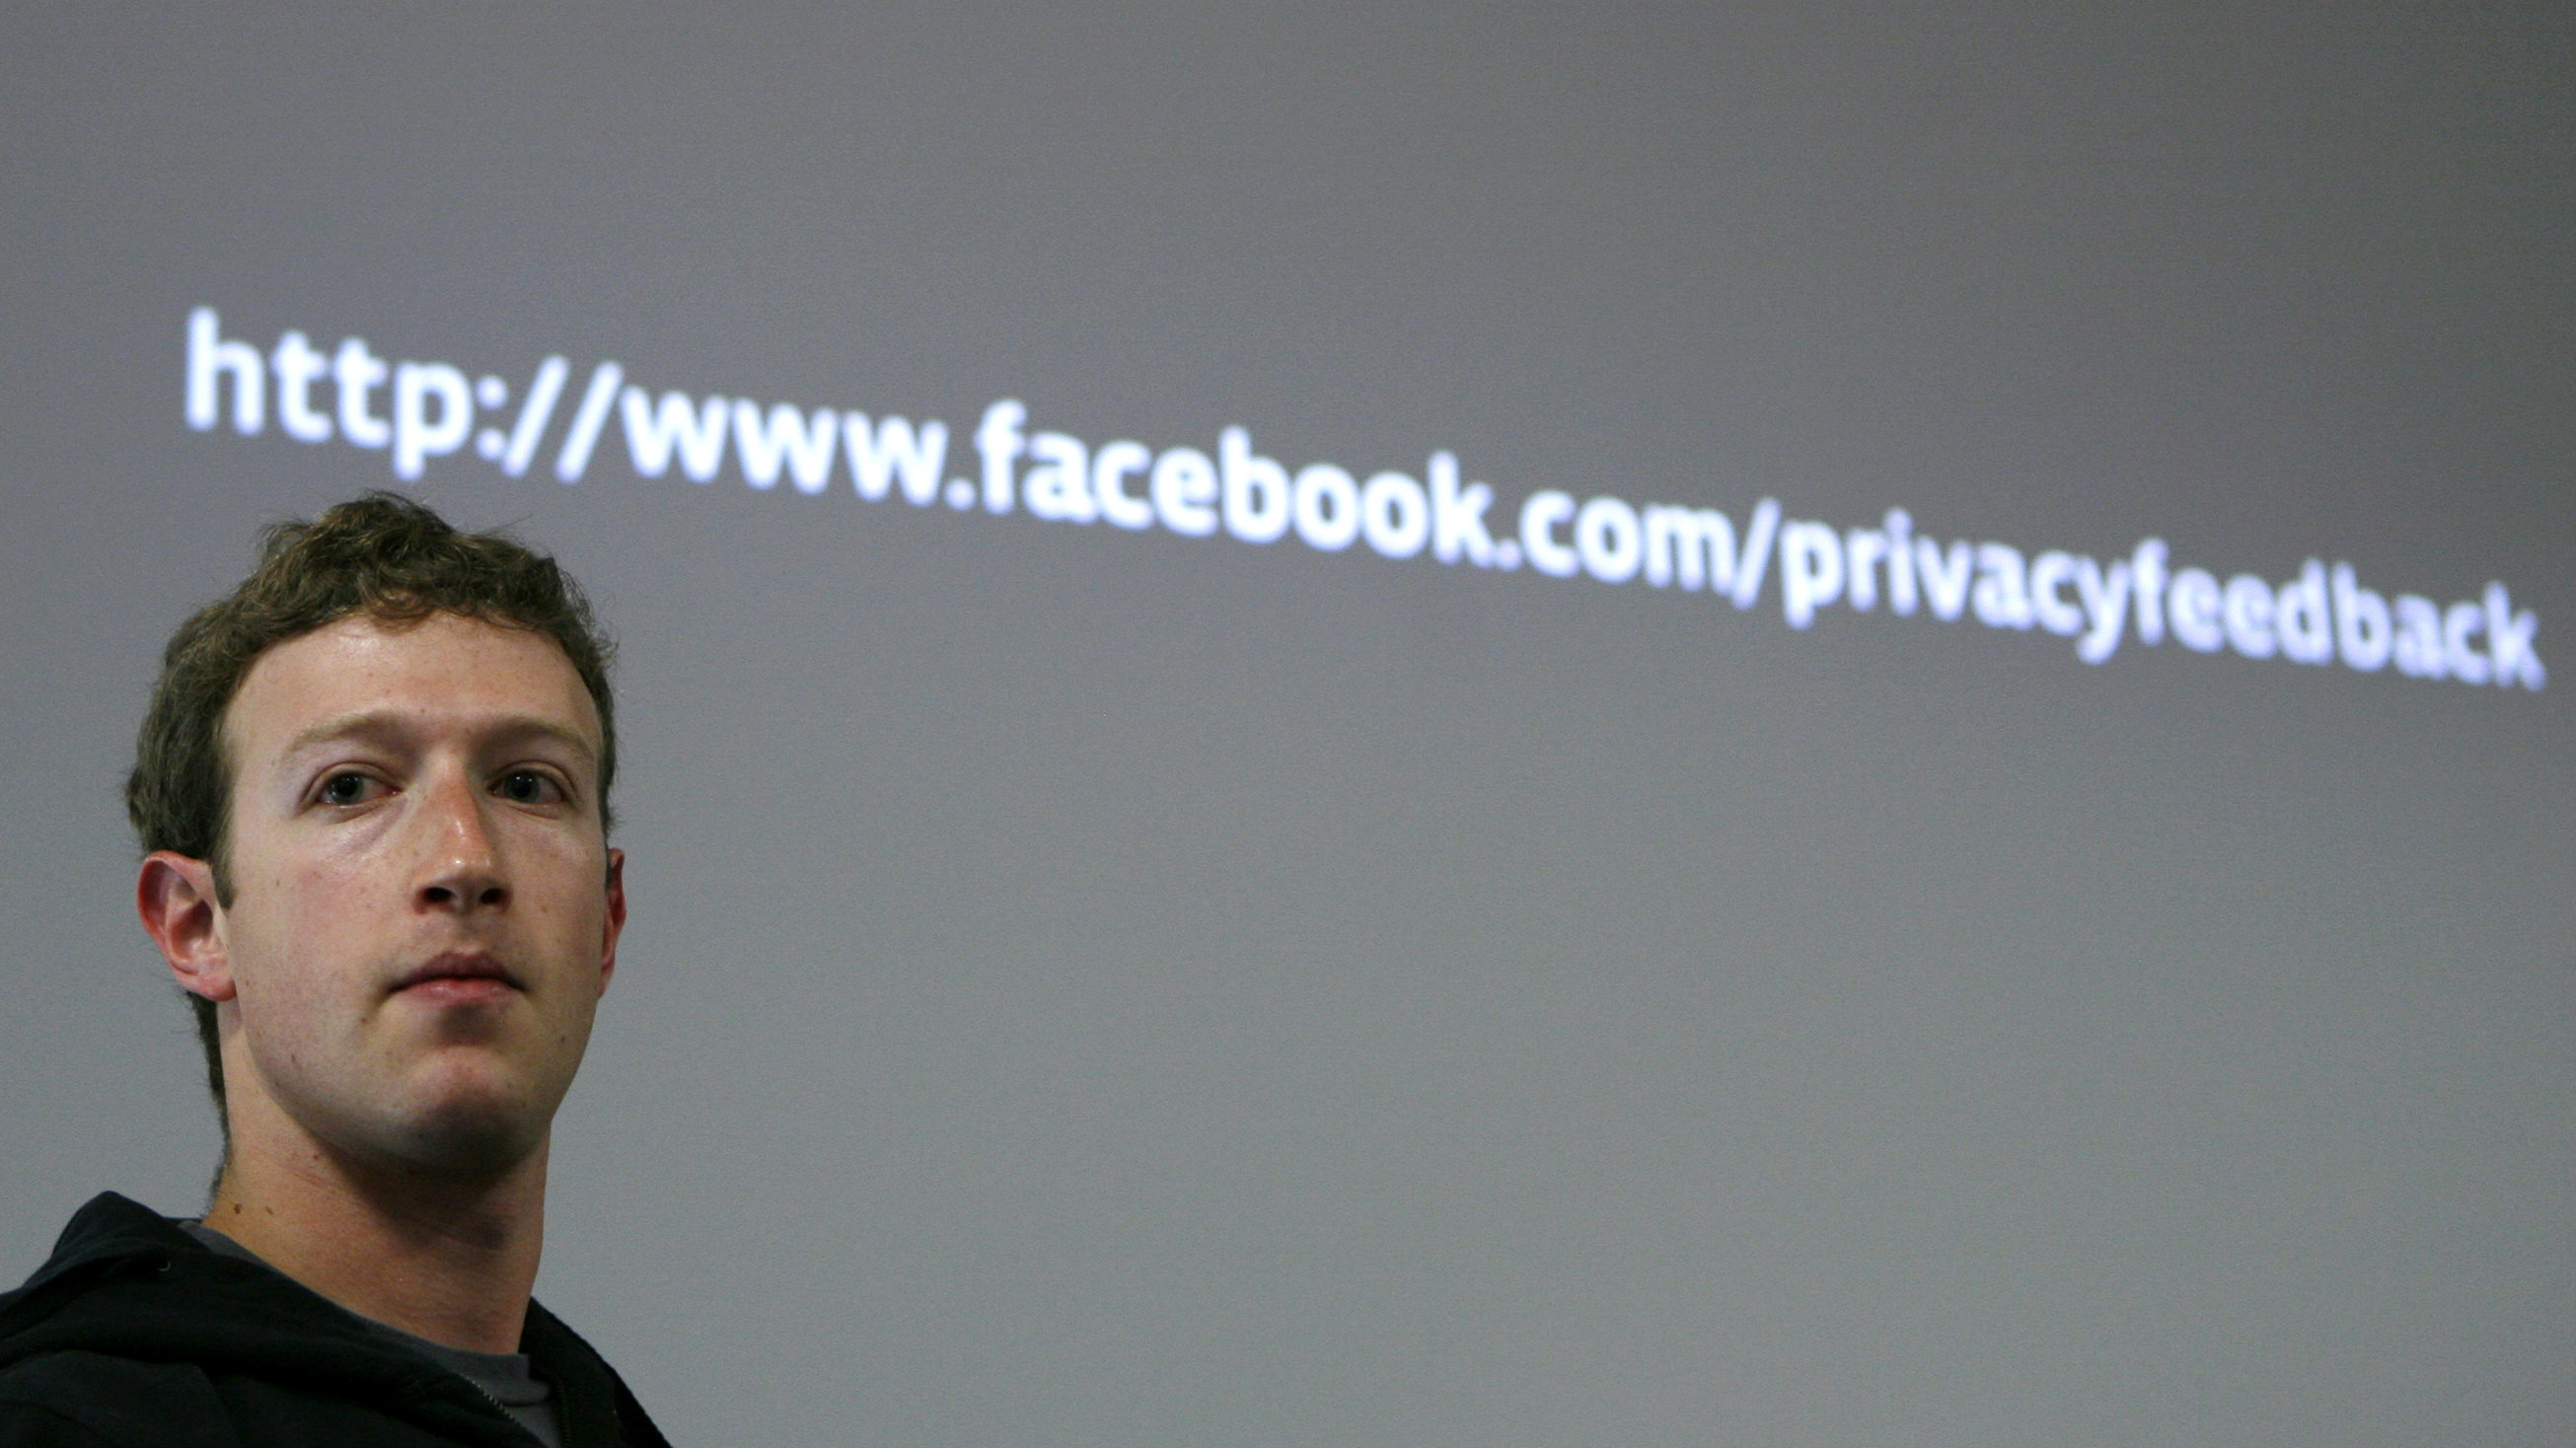 Facebook CEO Mark Zuckerberg takes a question during a news conference.